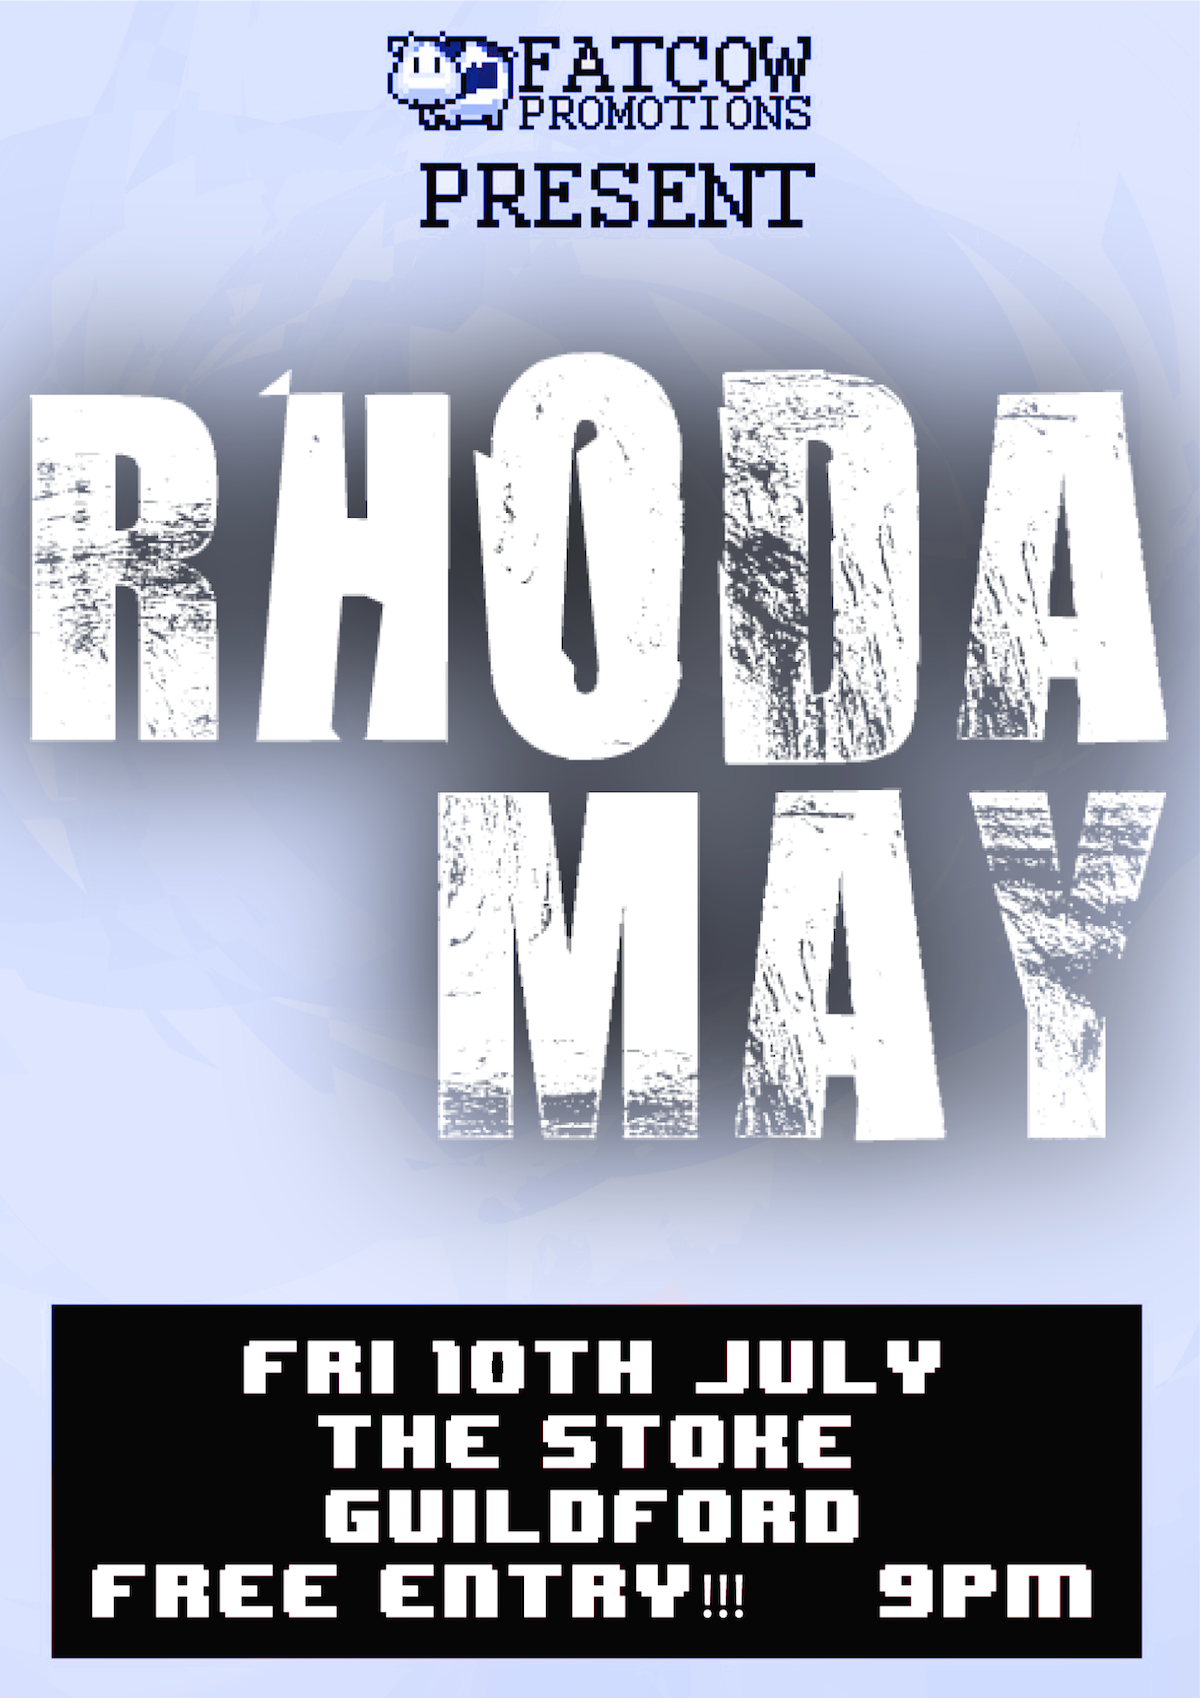 Rhoda May - Free Show @ The Stoke, Guildford